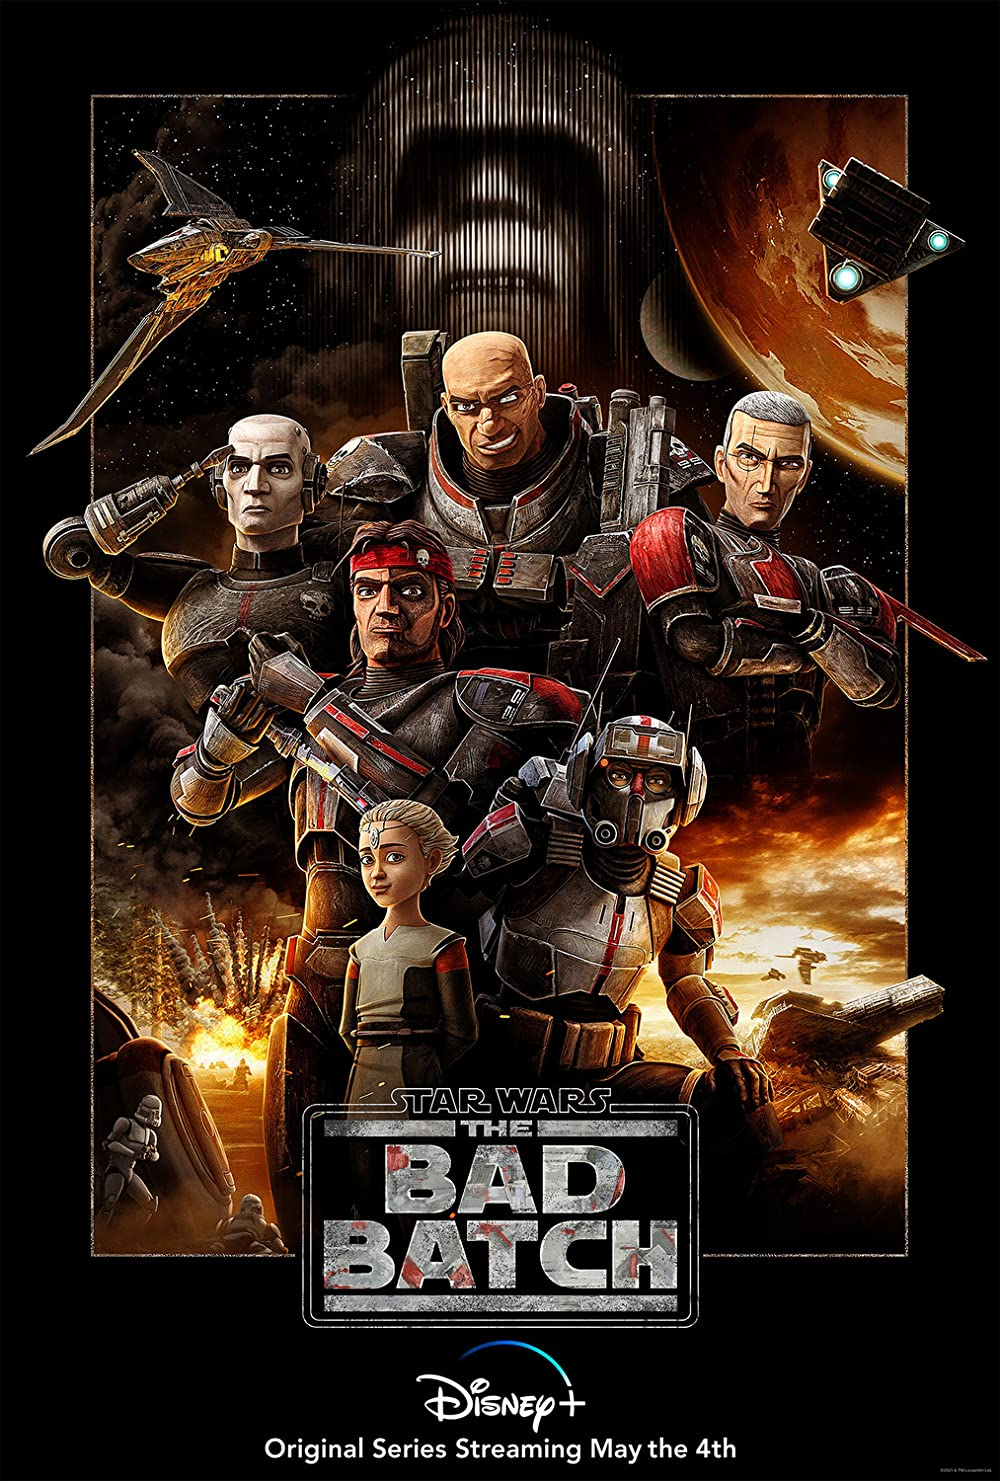 Star Wars The Bad Batch S01E02 2021 English 720p DSNP HDRip 180MB MSubs Download